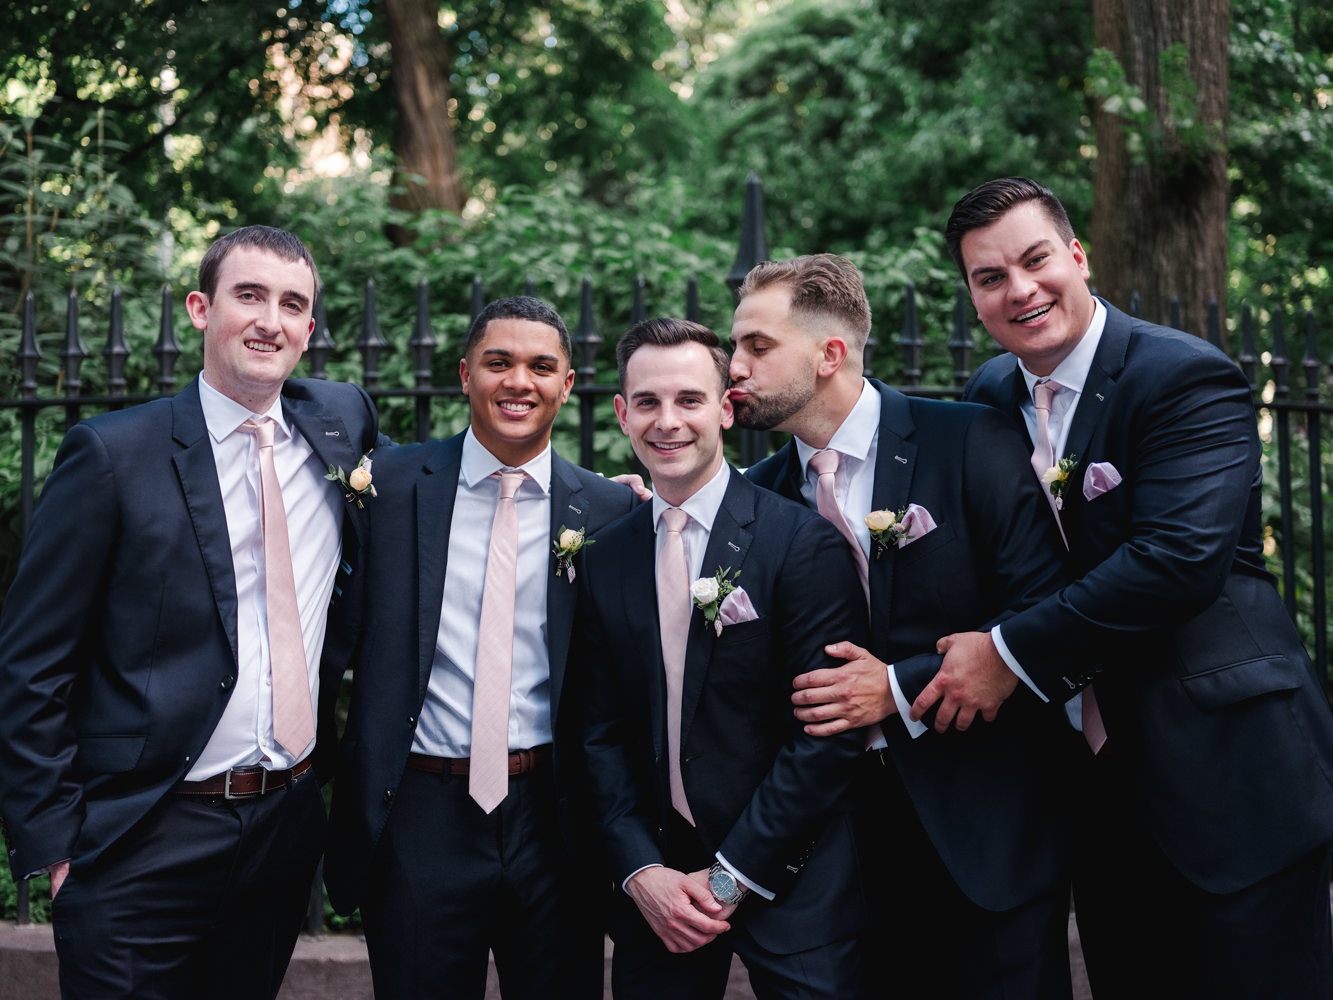 Gramercy-Park-Hotel-Wedding-New-York-Wedding-Photographer-20